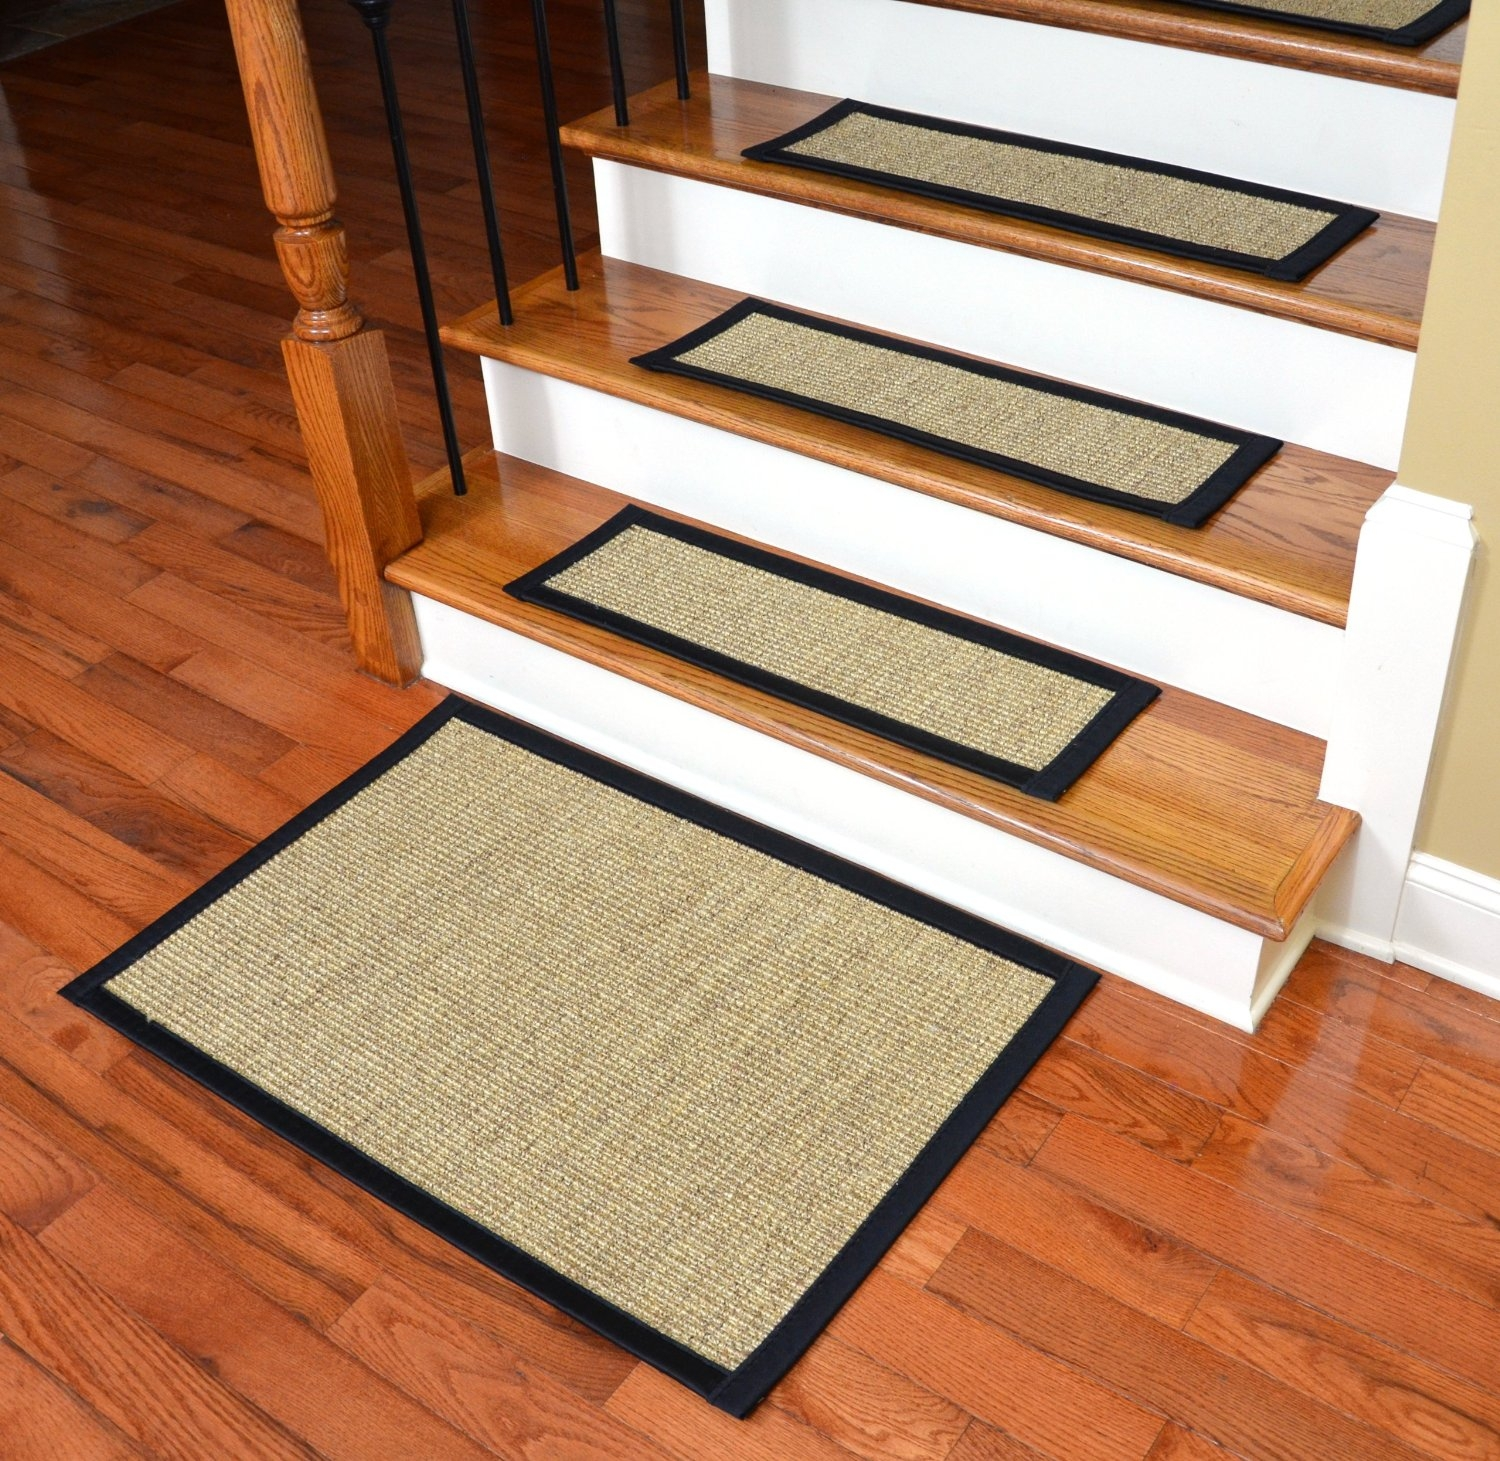 Flooring Non Slip Stair Treads Using Rug In Black And Beige On Intended For Sisal Stair Tread Rugs (#5 of 20)